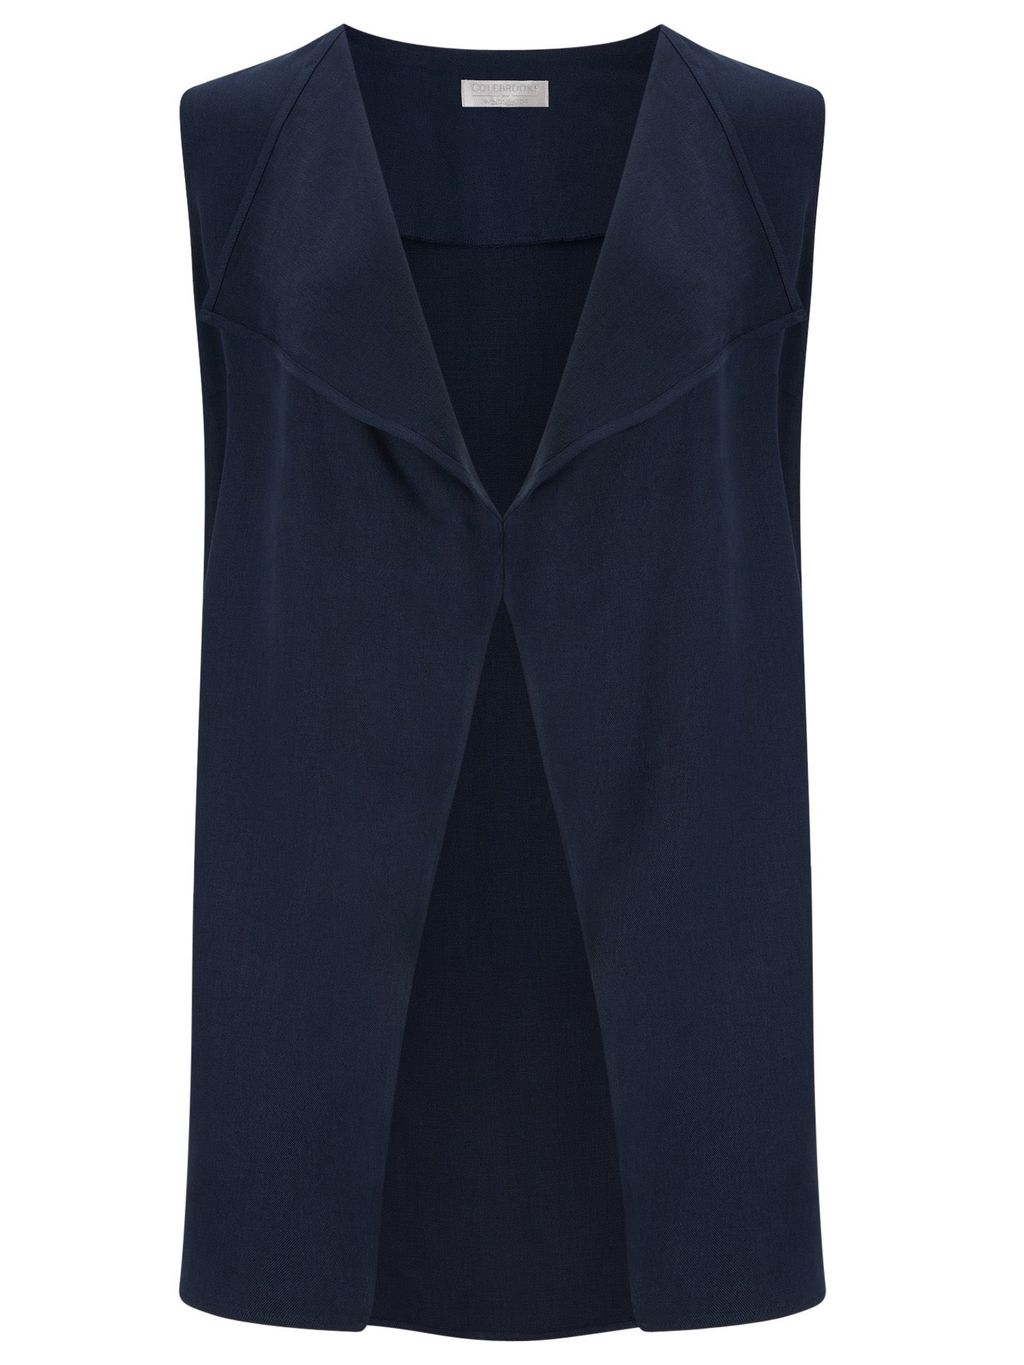 Tencel Long Waistcoat, Blue - pattern: plain; sleeve style: sleeveless; style: gilet; collar: round collar/collarless; fit: loose; predominant colour: navy; occasions: casual, creative work; length: standard; fibres: polyester/polyamide - 100%; sleeve length: sleeveless; collar break: low/open; pattern type: fabric; texture group: other - light to midweight; season: s/s 2016; wardrobe: highlight